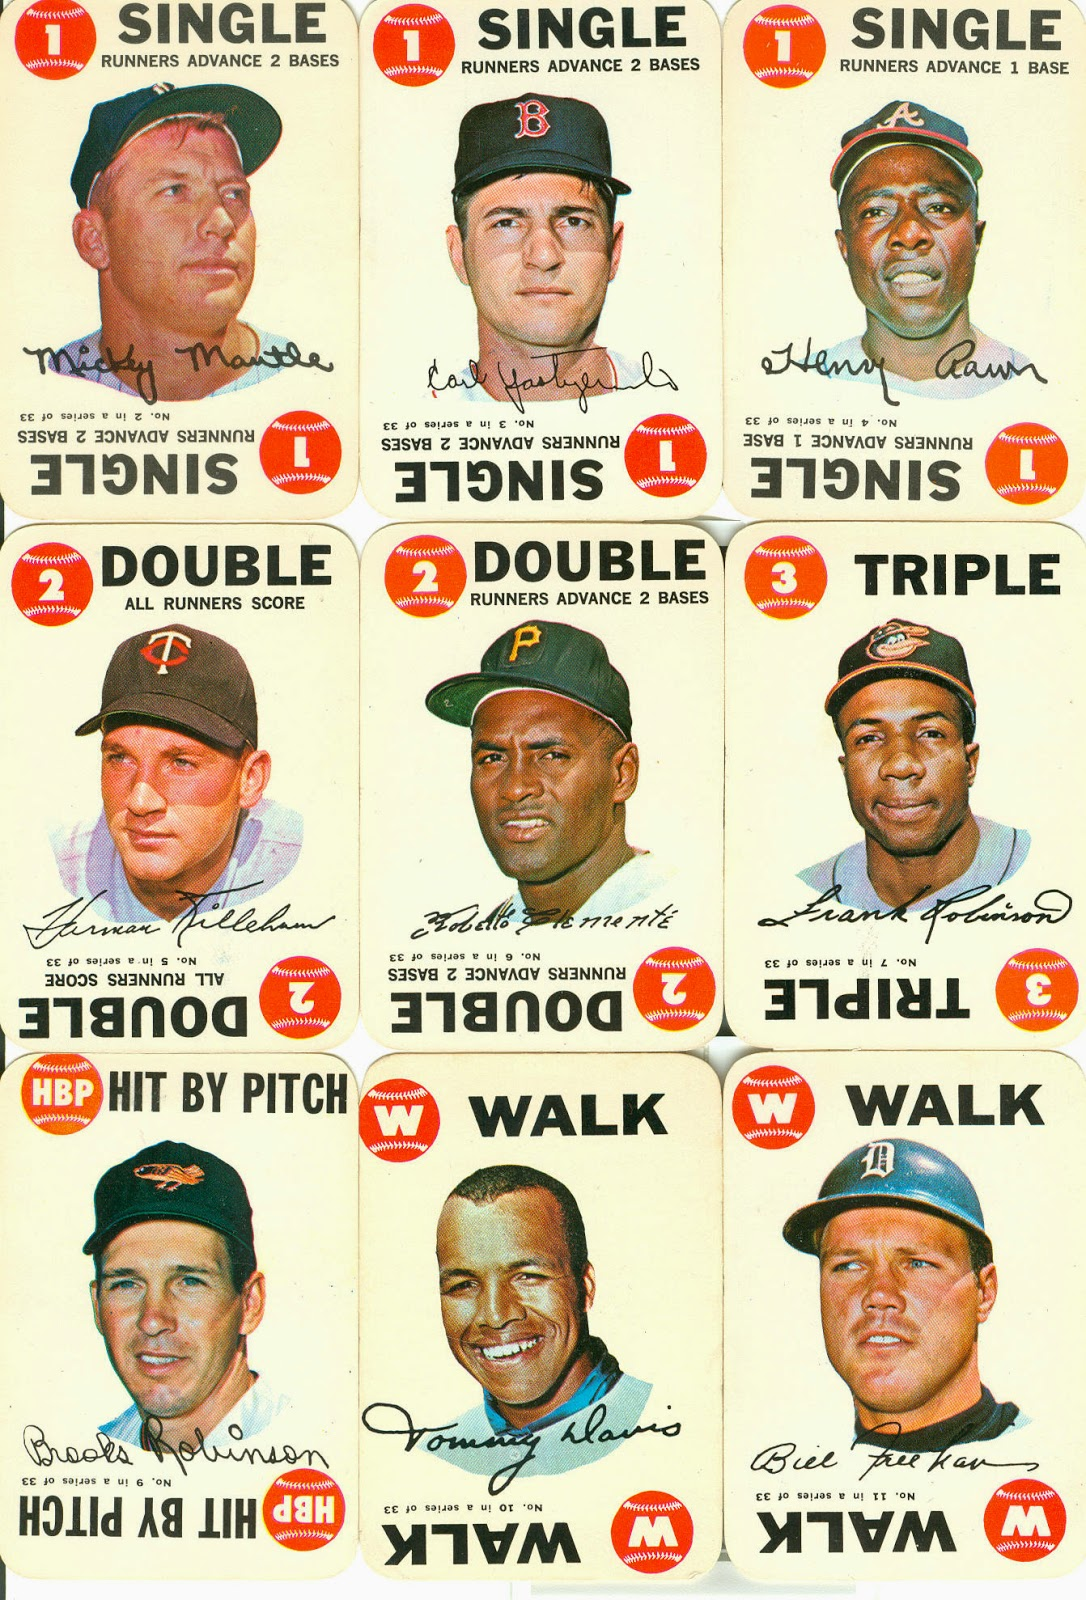 Topps Baseball Playing Card Inserts Revisited